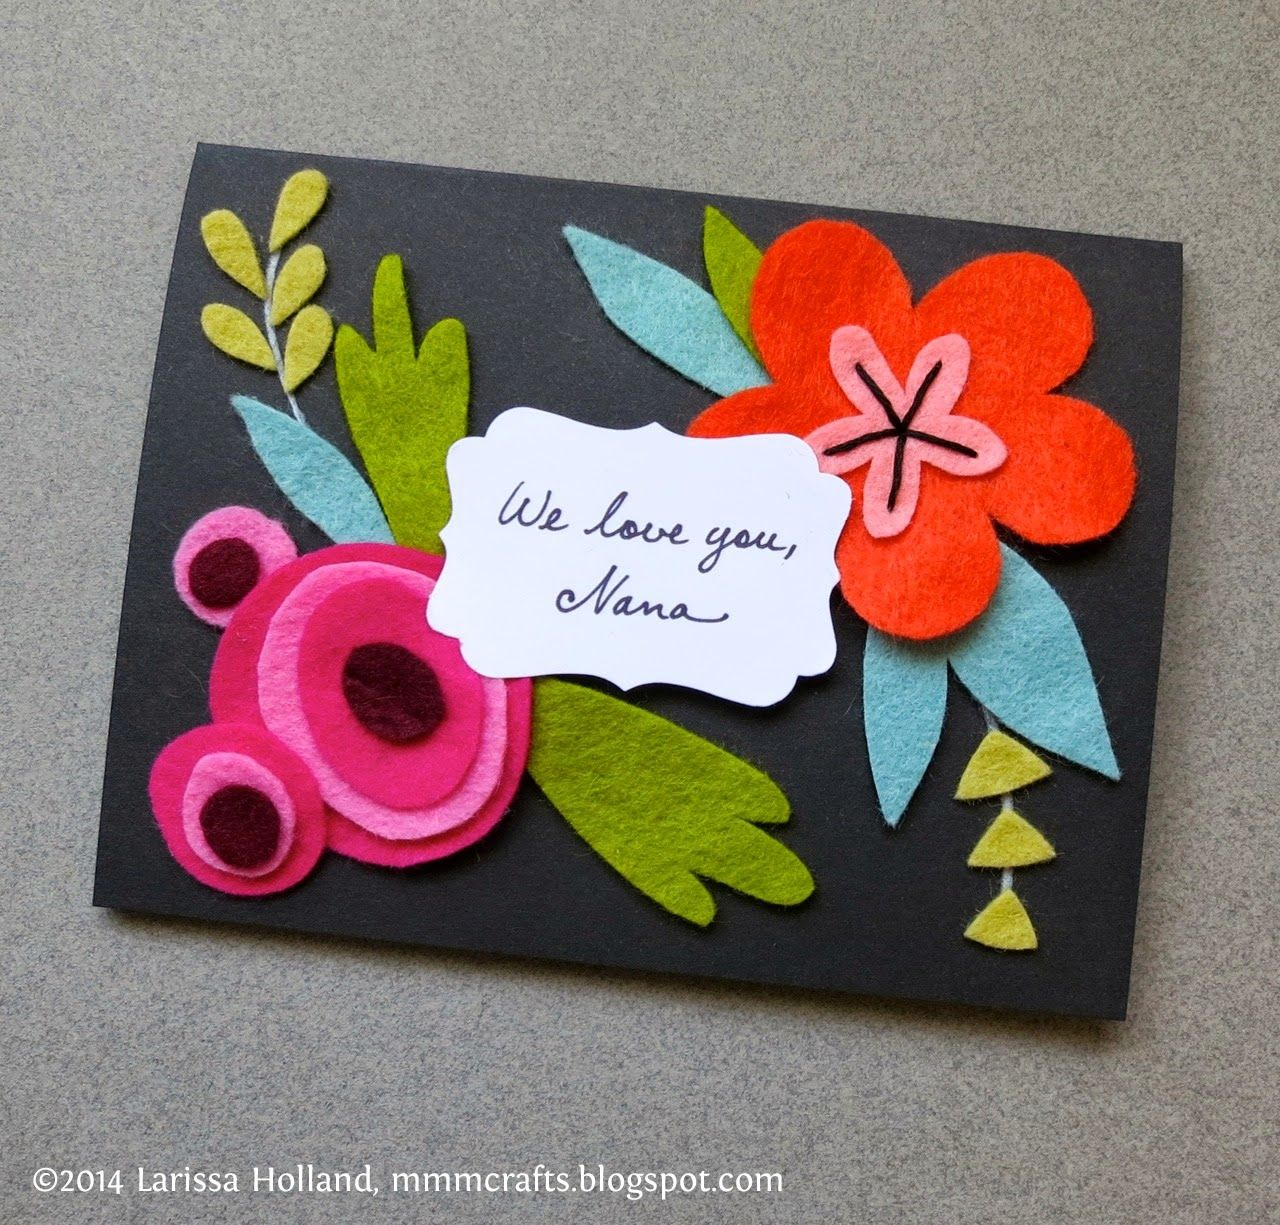 mmmcrafts: make a felt bouquet card for mom